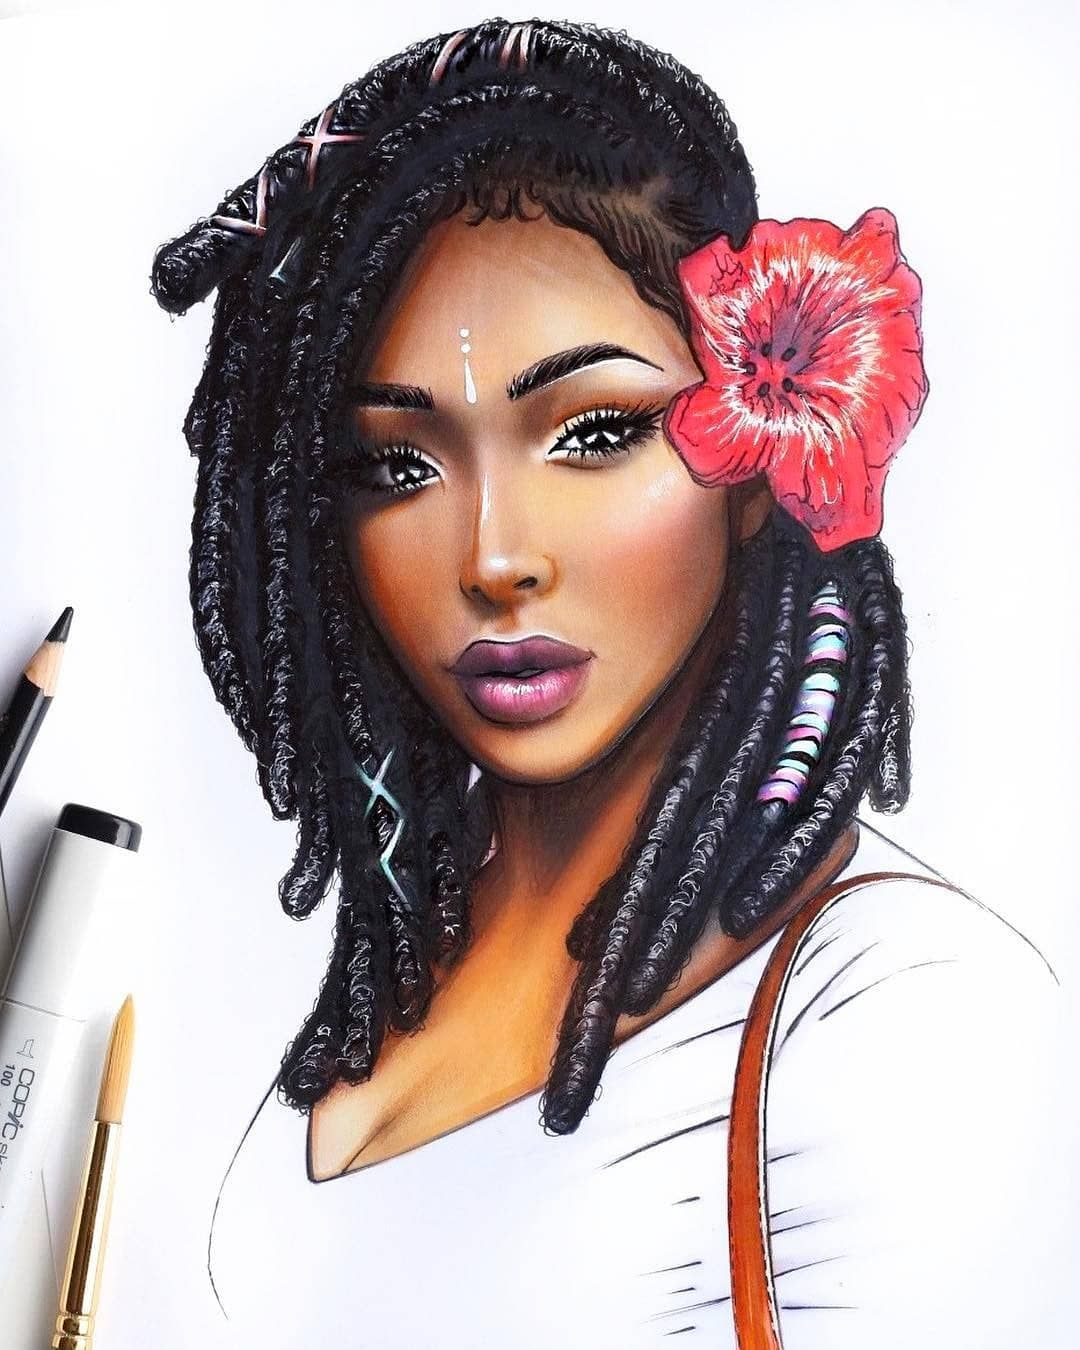 Dope Black Art On Instagram Dopeblackart By Brienneyvonne Loc Queen Natural10 11 Pro I Love Drawing With Markers More Than Can Put Into